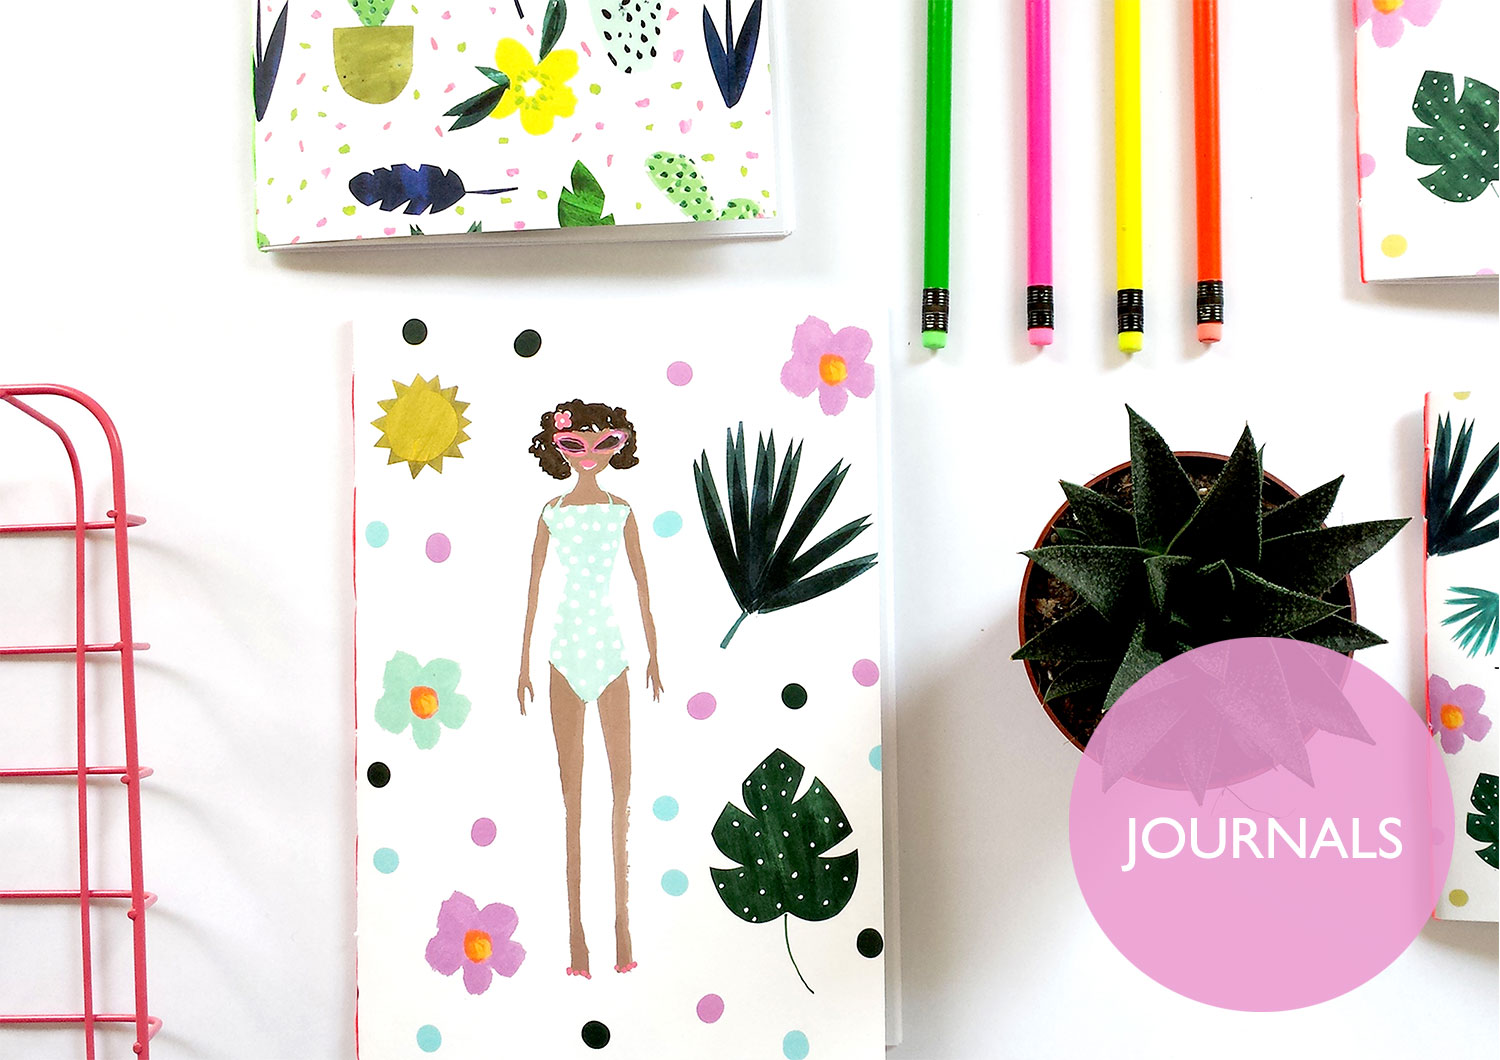 Journals-Susse-Collection.jpg